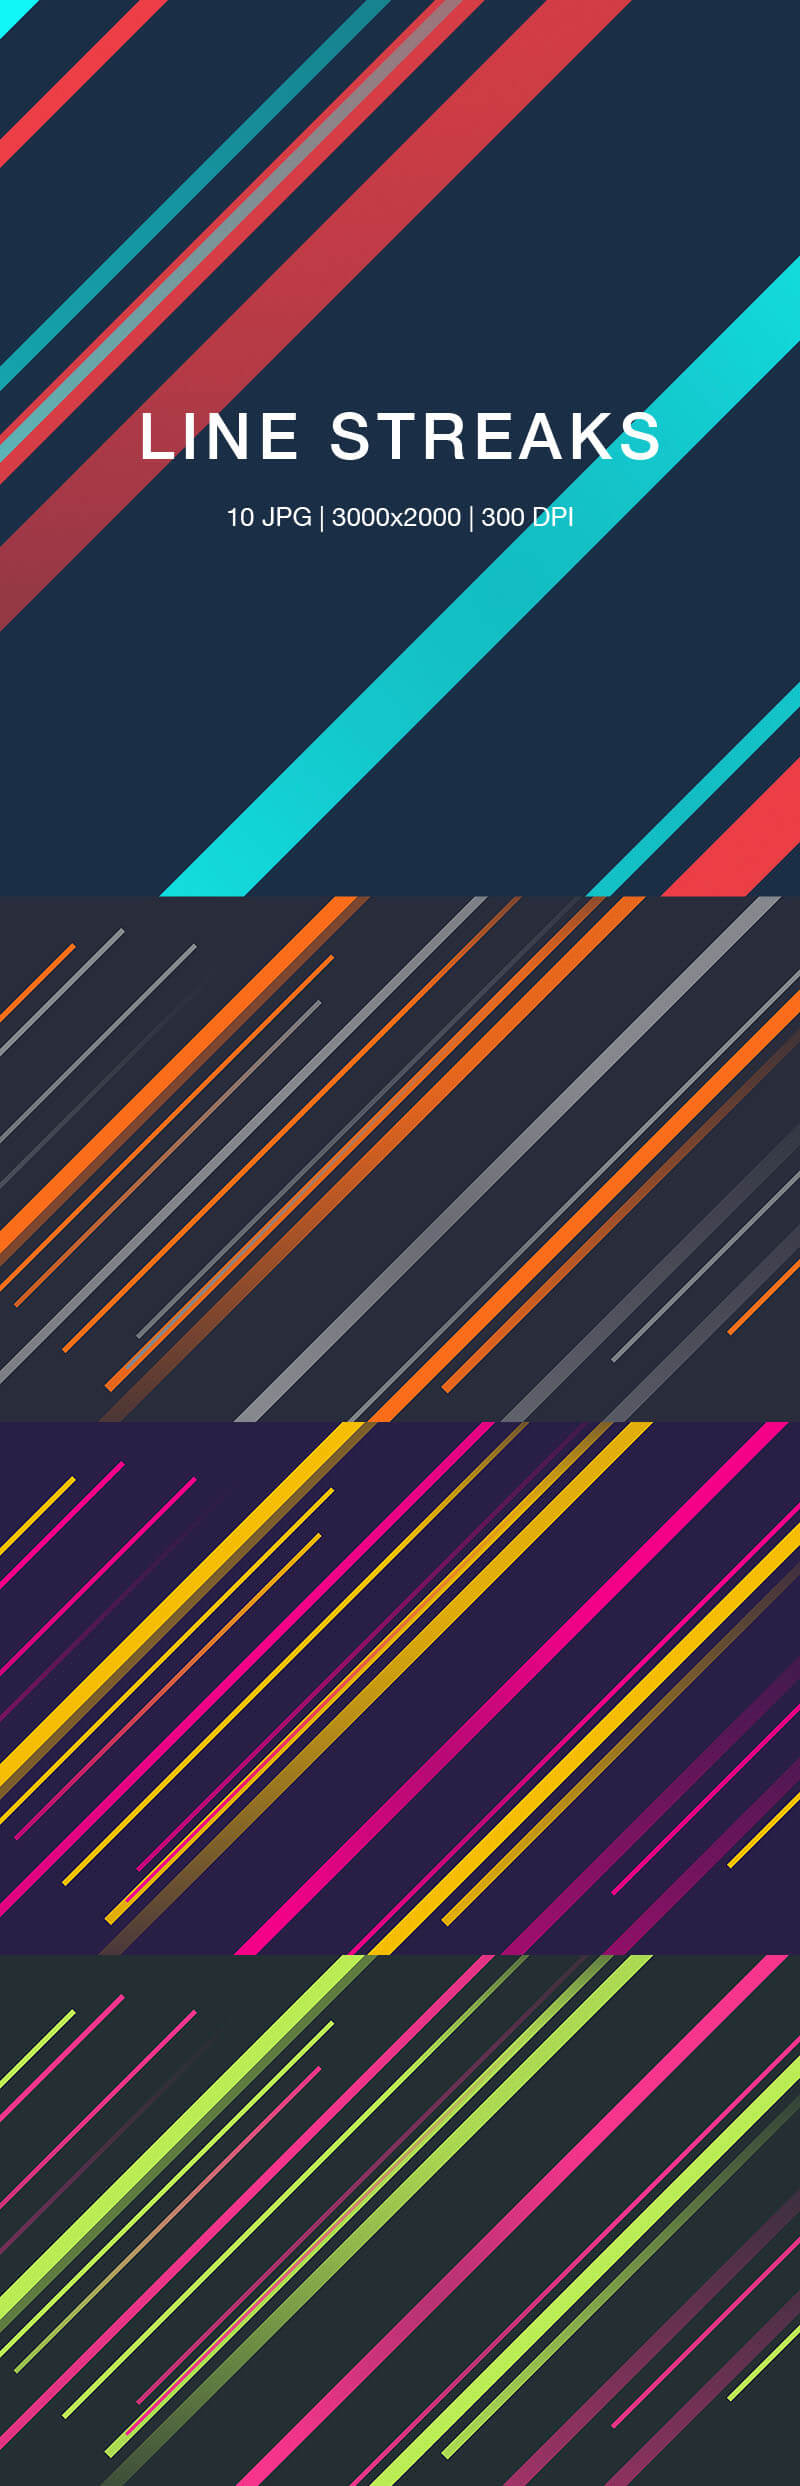 Line Streaks Backgrounds Preview